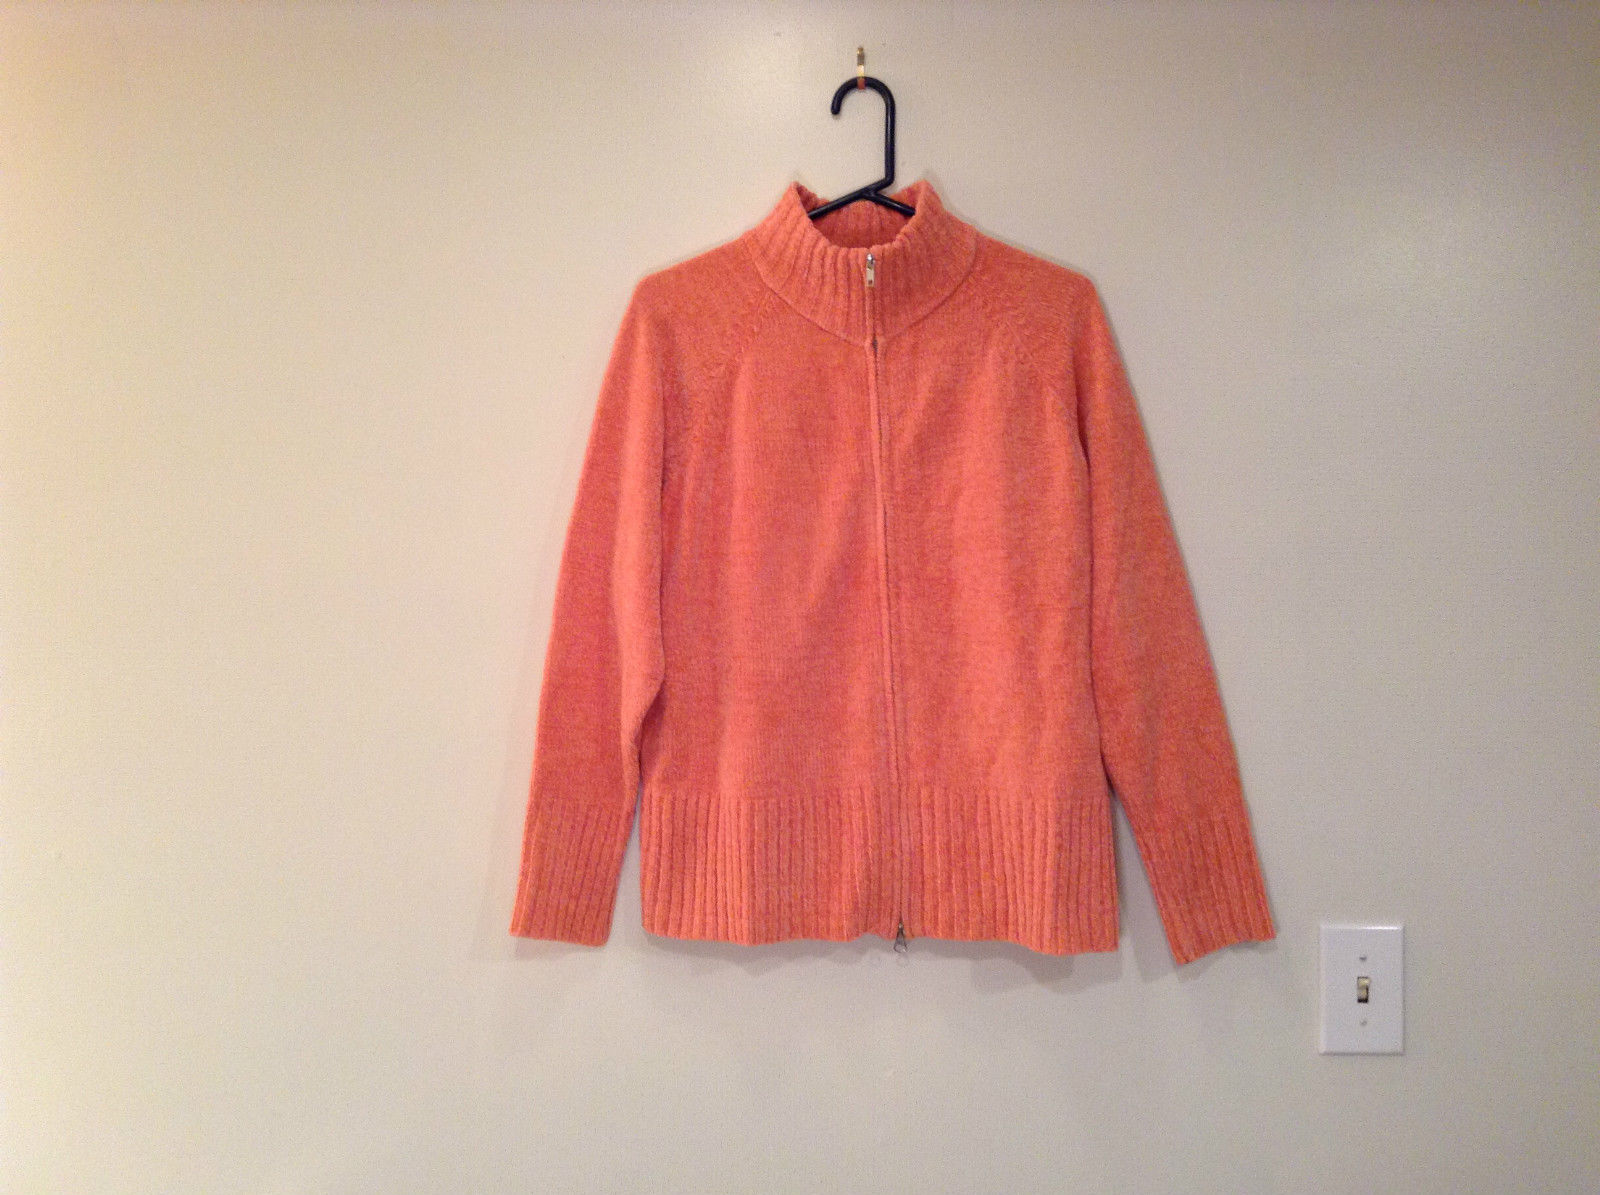 Denim and Company 100 Percent Acrylic Knitted Orange Size L Turtleneck Sweater